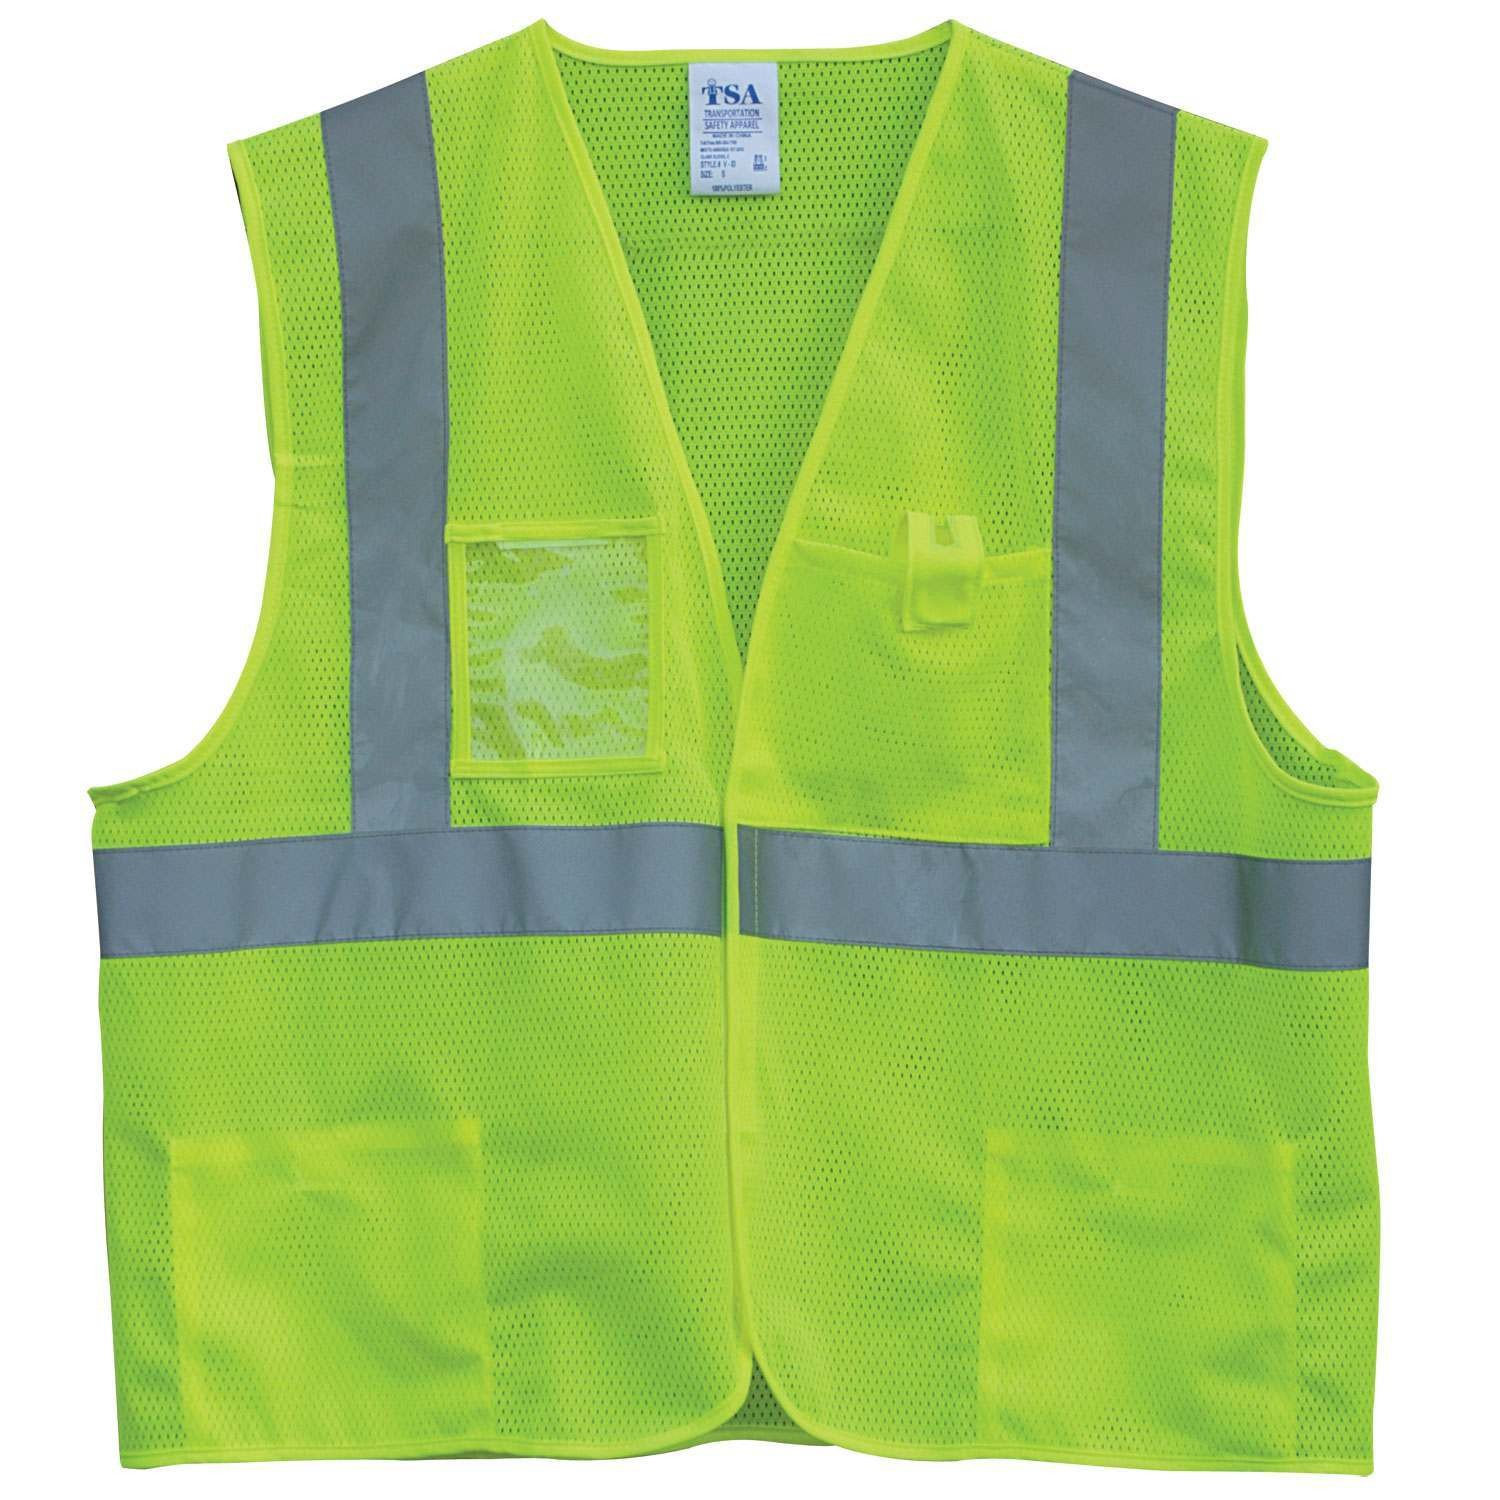 Hi Vis Two Tone Safety Vest With X On The Back Reflective Waistcoat Breathable Mesh Vest Orders Are Welcome. Workplace Safety Supplies Security & Protection